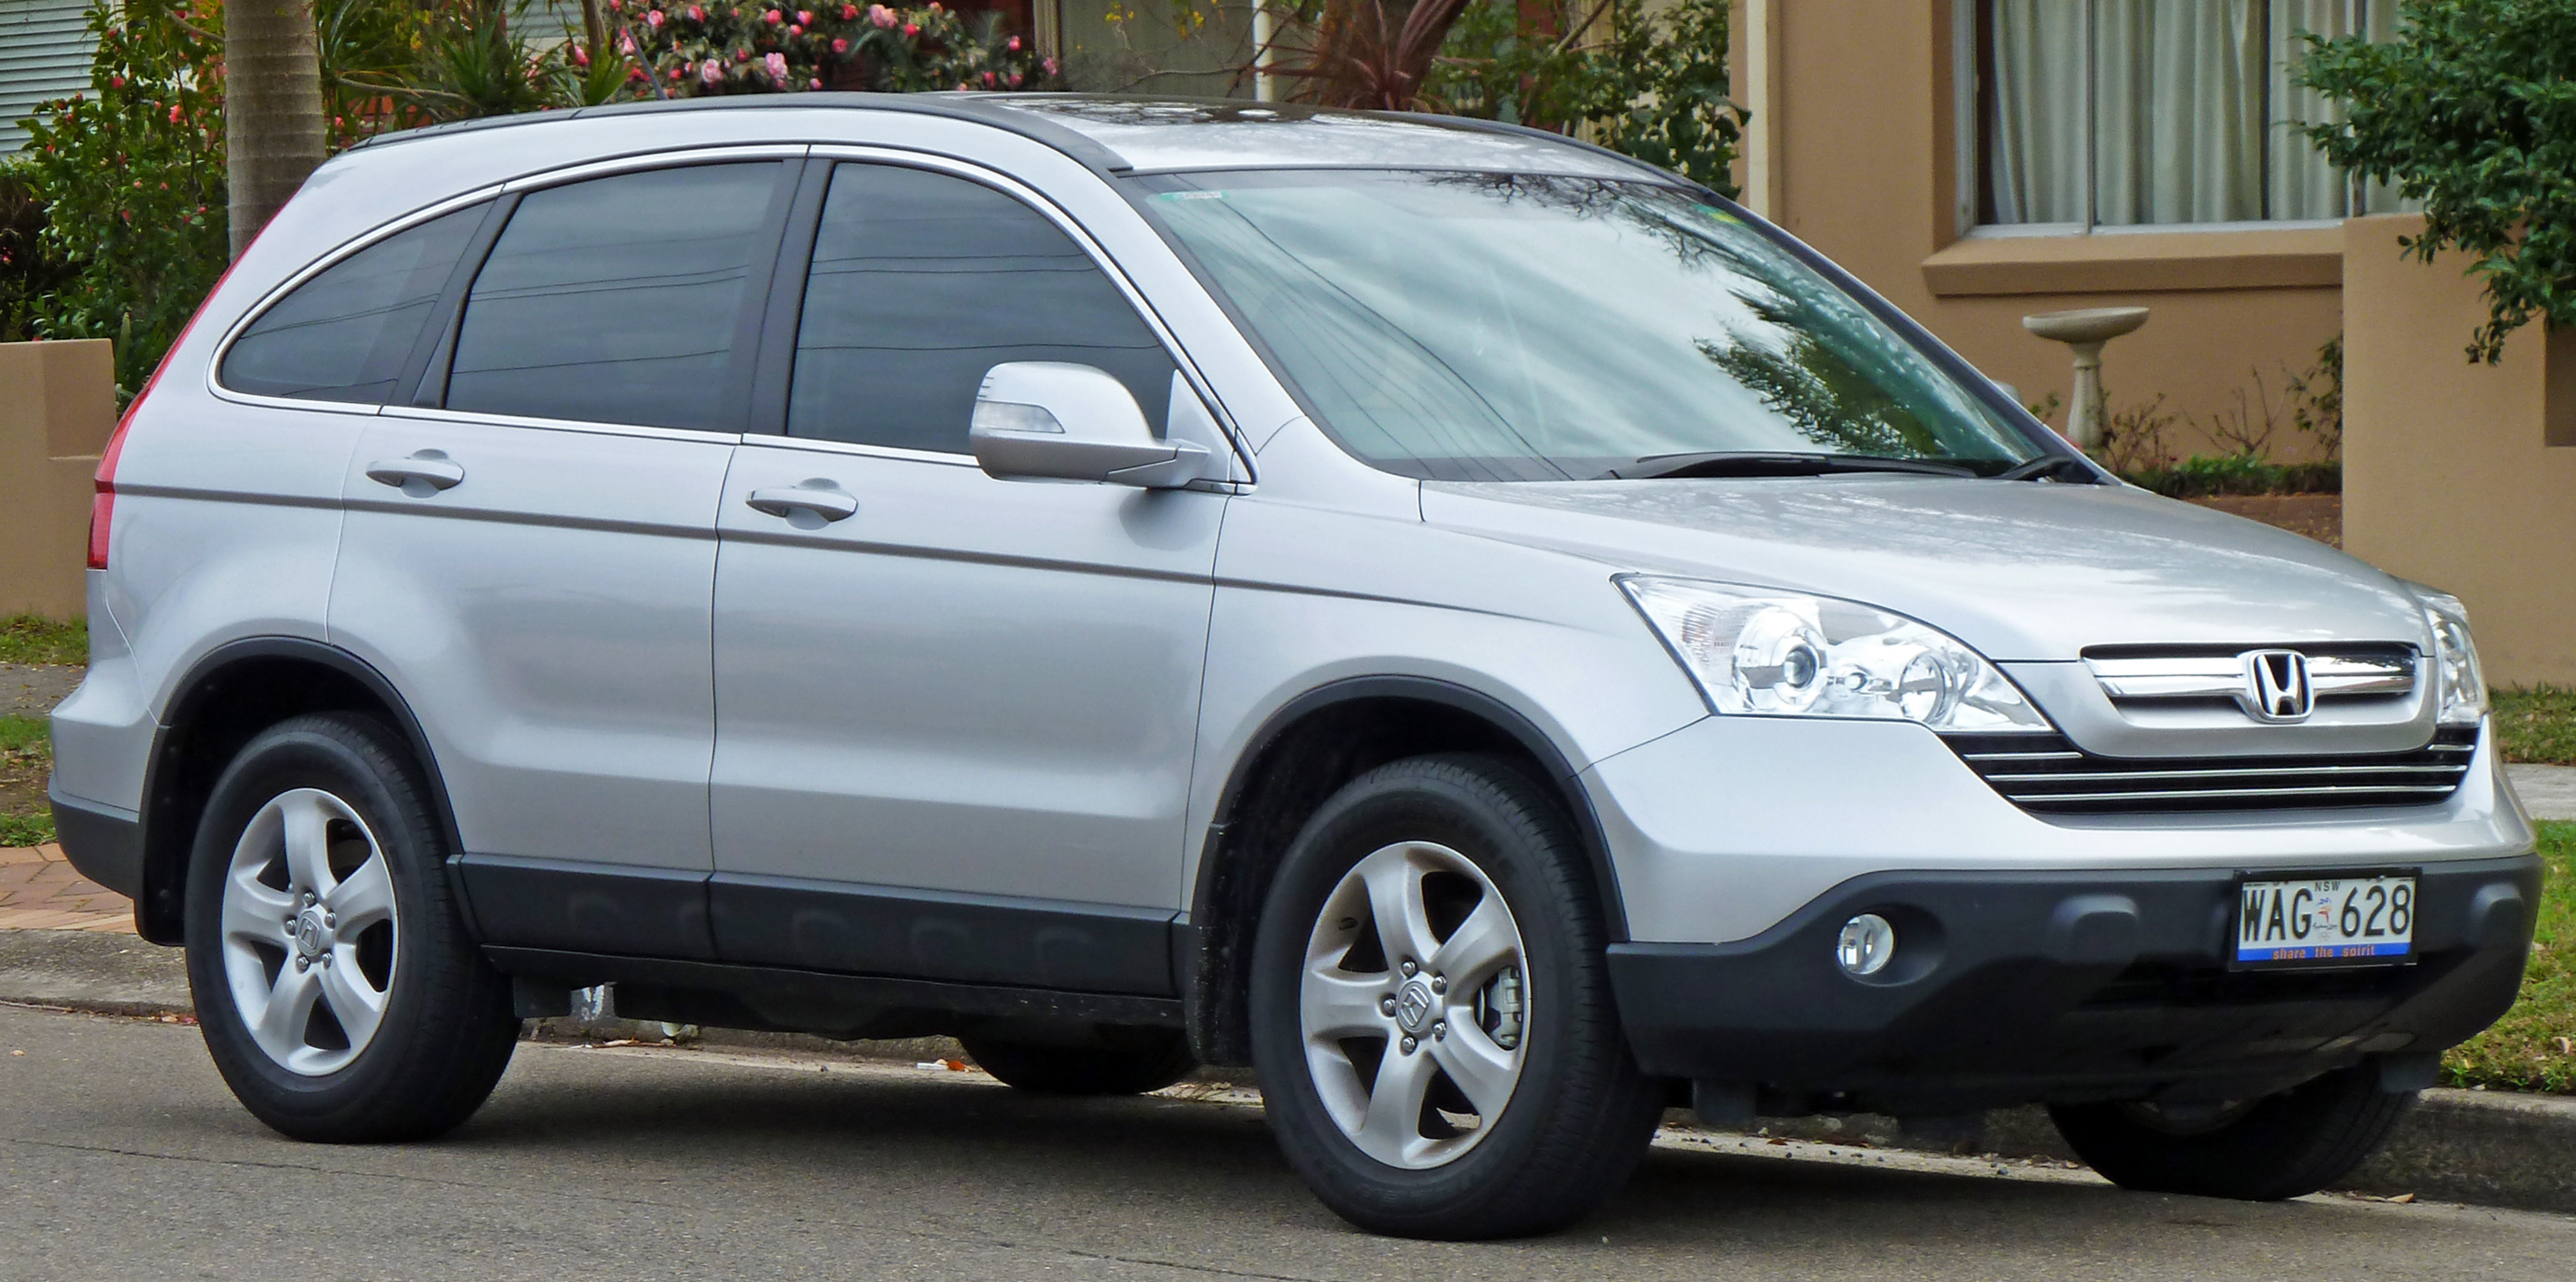 Honda CR-V 2010 photo - 2